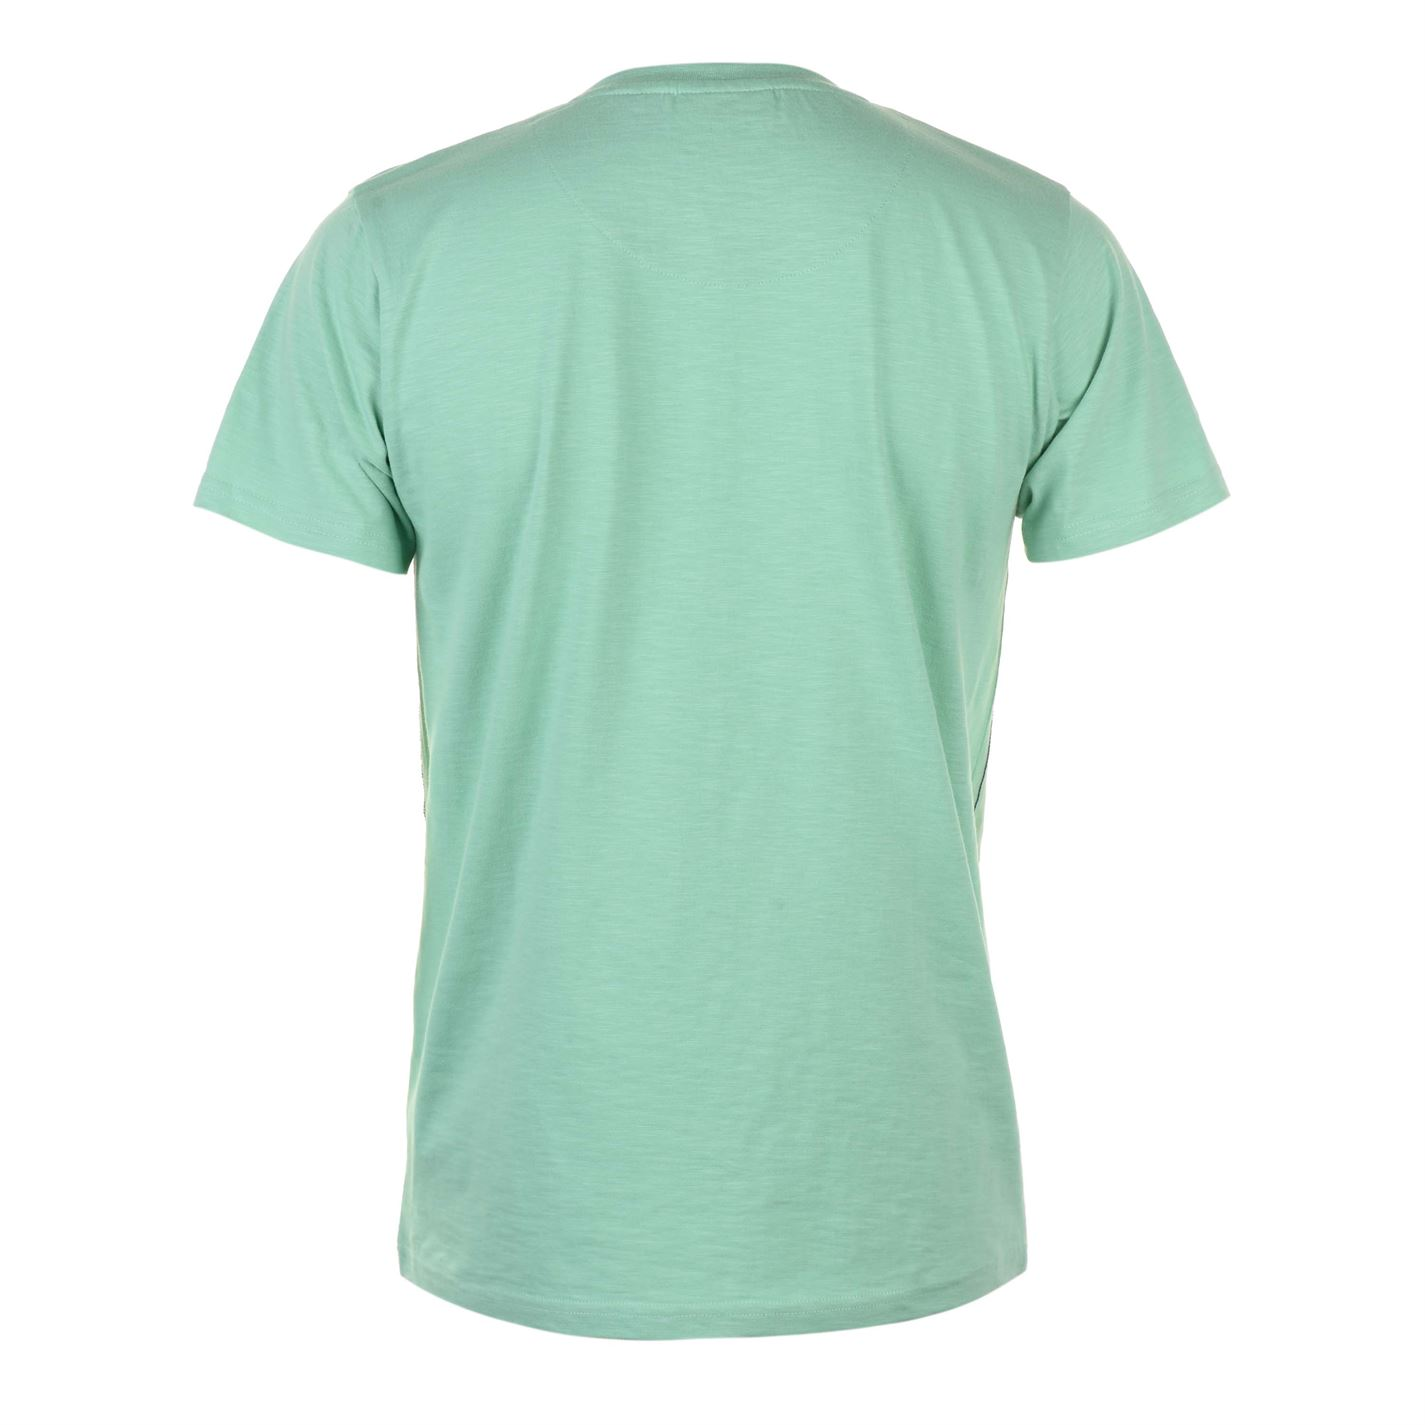 Pierre-Cardin-Mens-Print-Y-Neck-T-Shirt-V-Tee-Top-Short-Sleeve-Cotton thumbnail 12